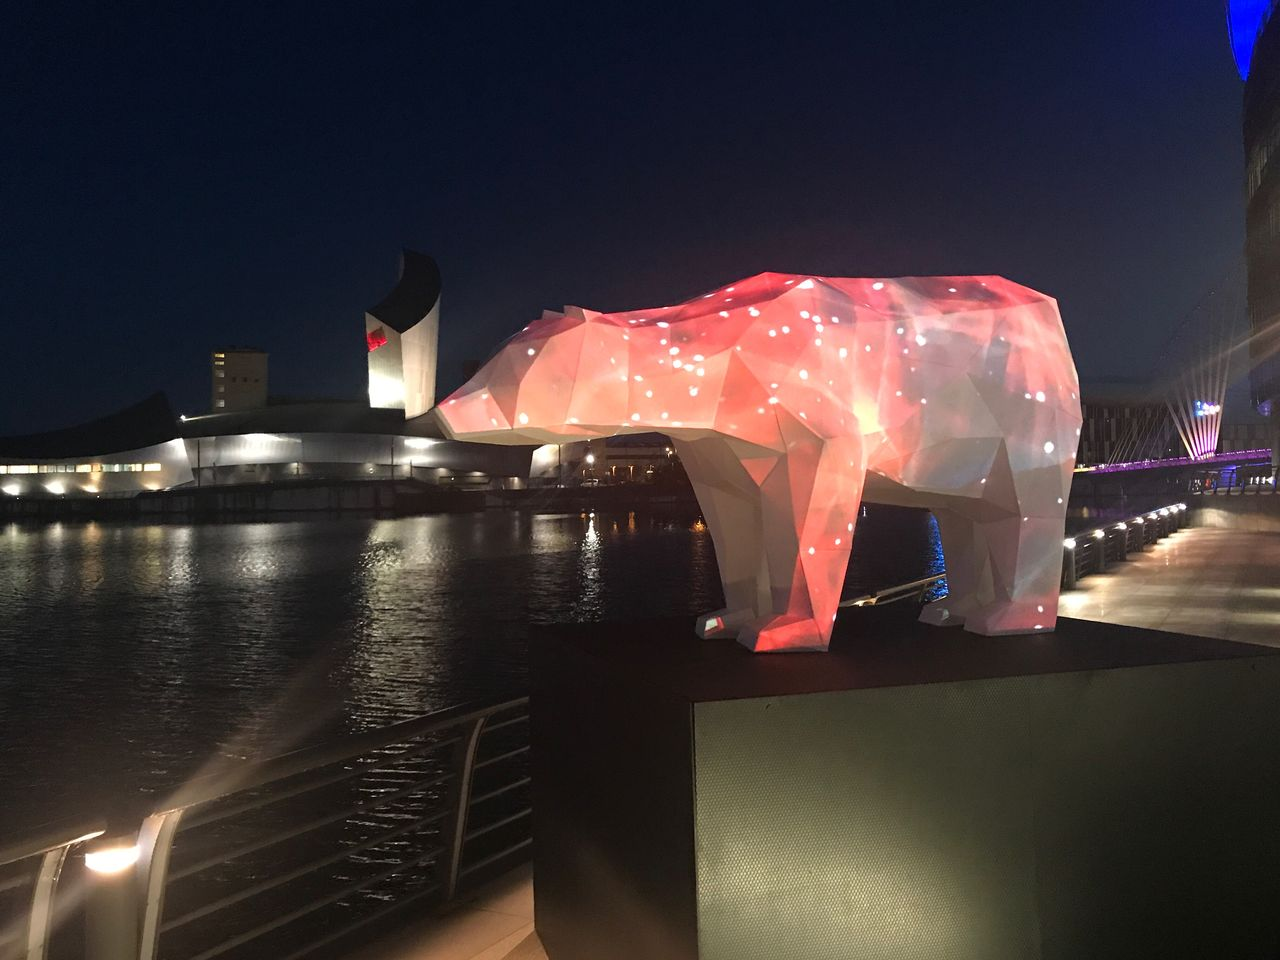 Nightt Illuminated No People Built Structure Architecture Arts Culture And Entertainment Red Outdoors Sky City Unnatural Borders Mediacityuk Imperial War Museum North Endangered Species Art Installation Lights Projection Art First Eyeem Photo